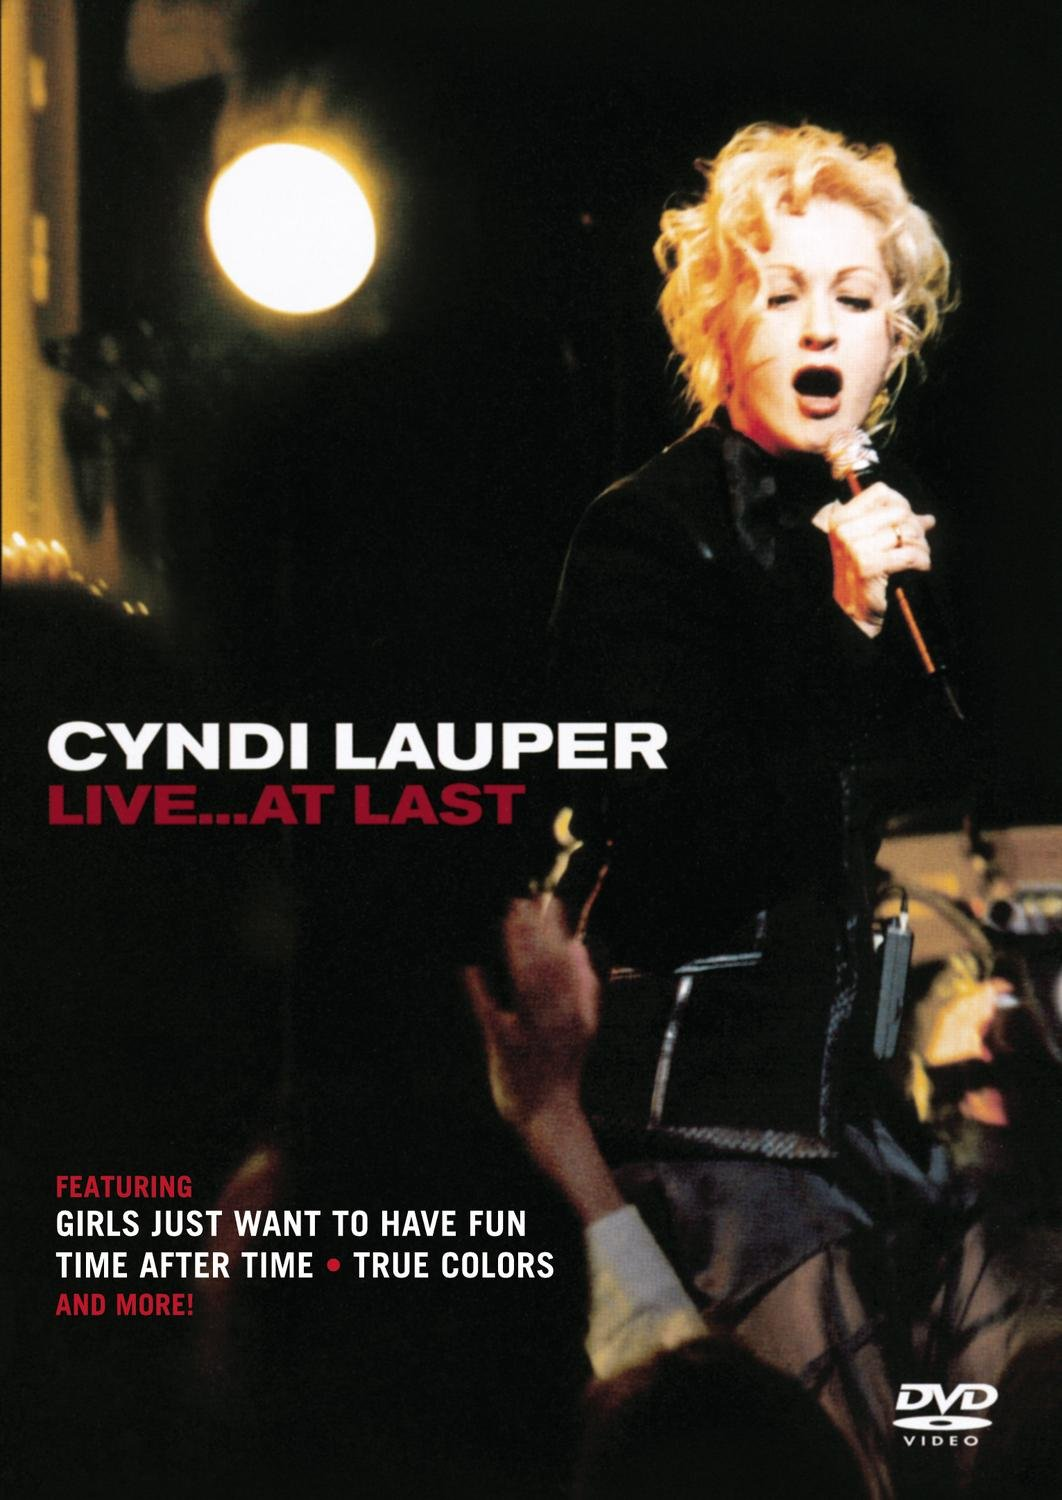 Cyndi Lauper: Live...At Last by SBME SPECIAL MKTS.